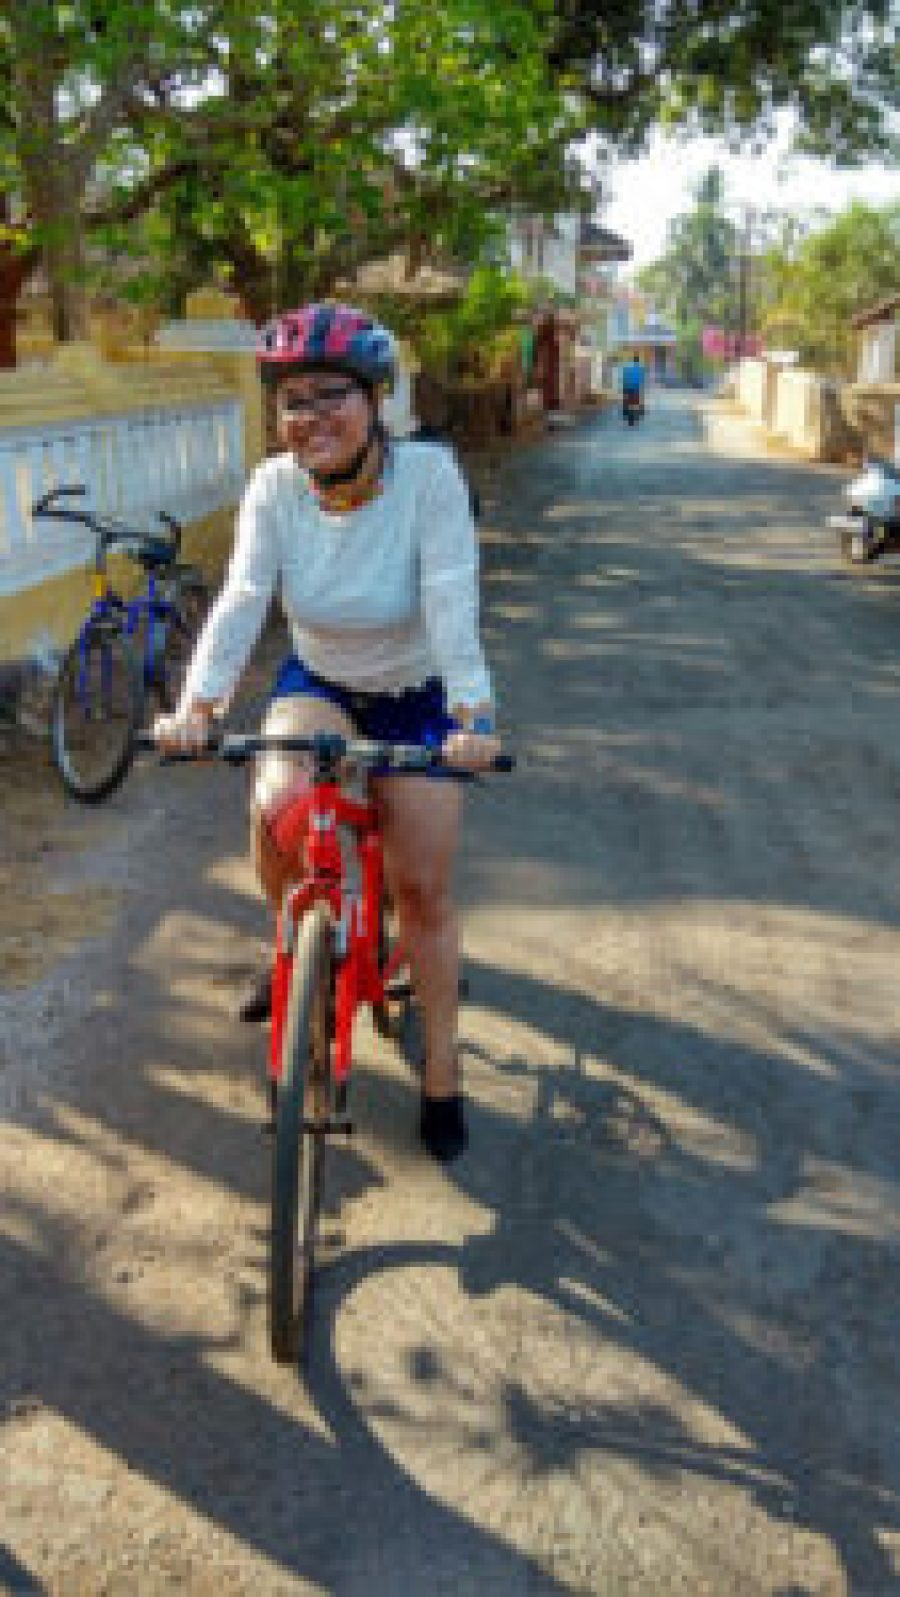 My bicycle ride in Goa